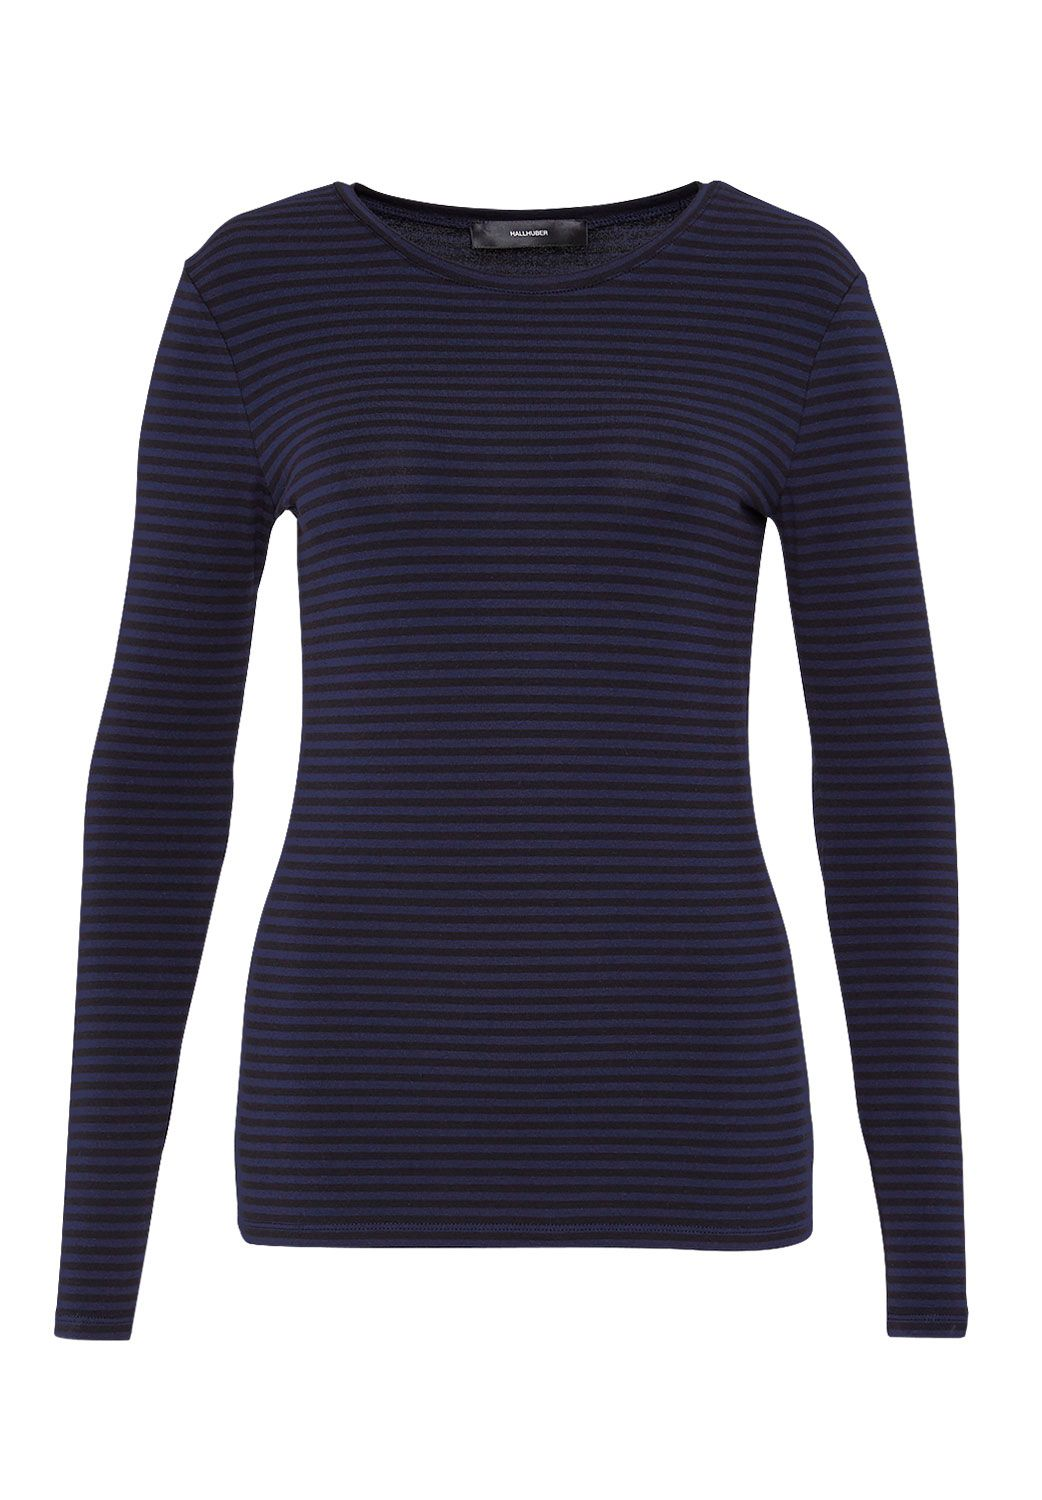 Hallhuber Hallhuber Striped long sleeve with round neckline, Blue